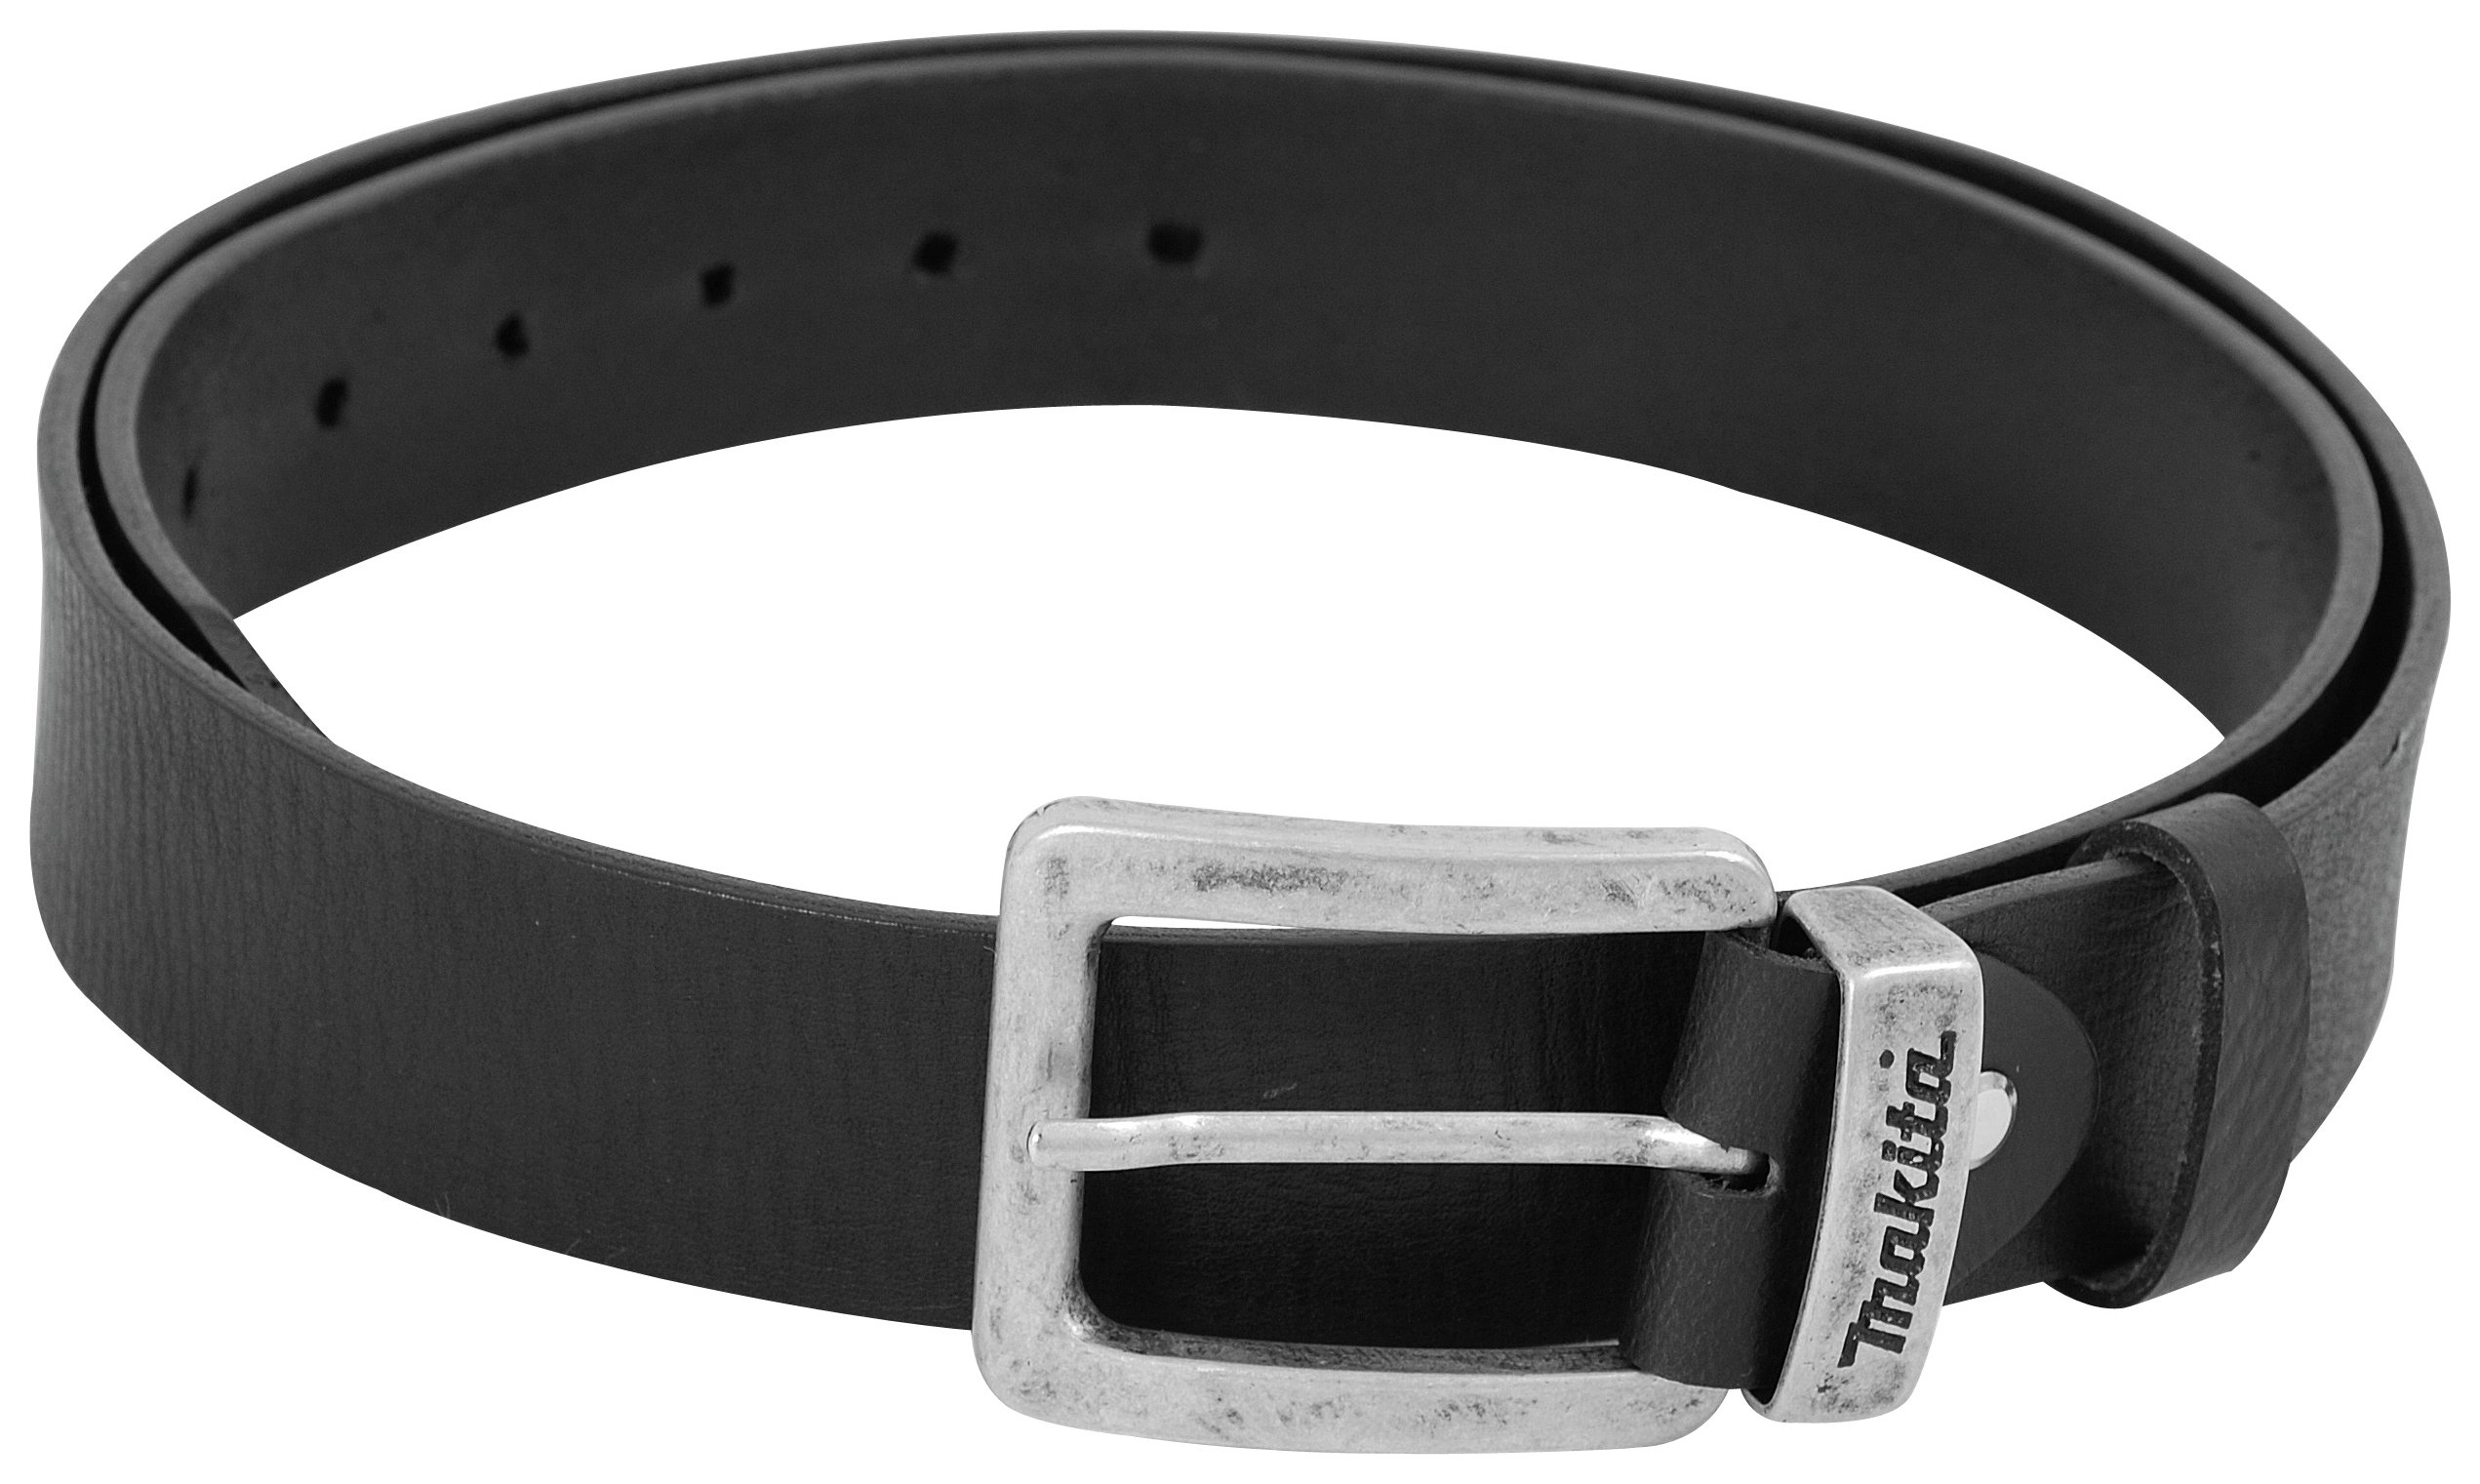 Image of Makita Black Leather Belt 28 inch - 38 inch.